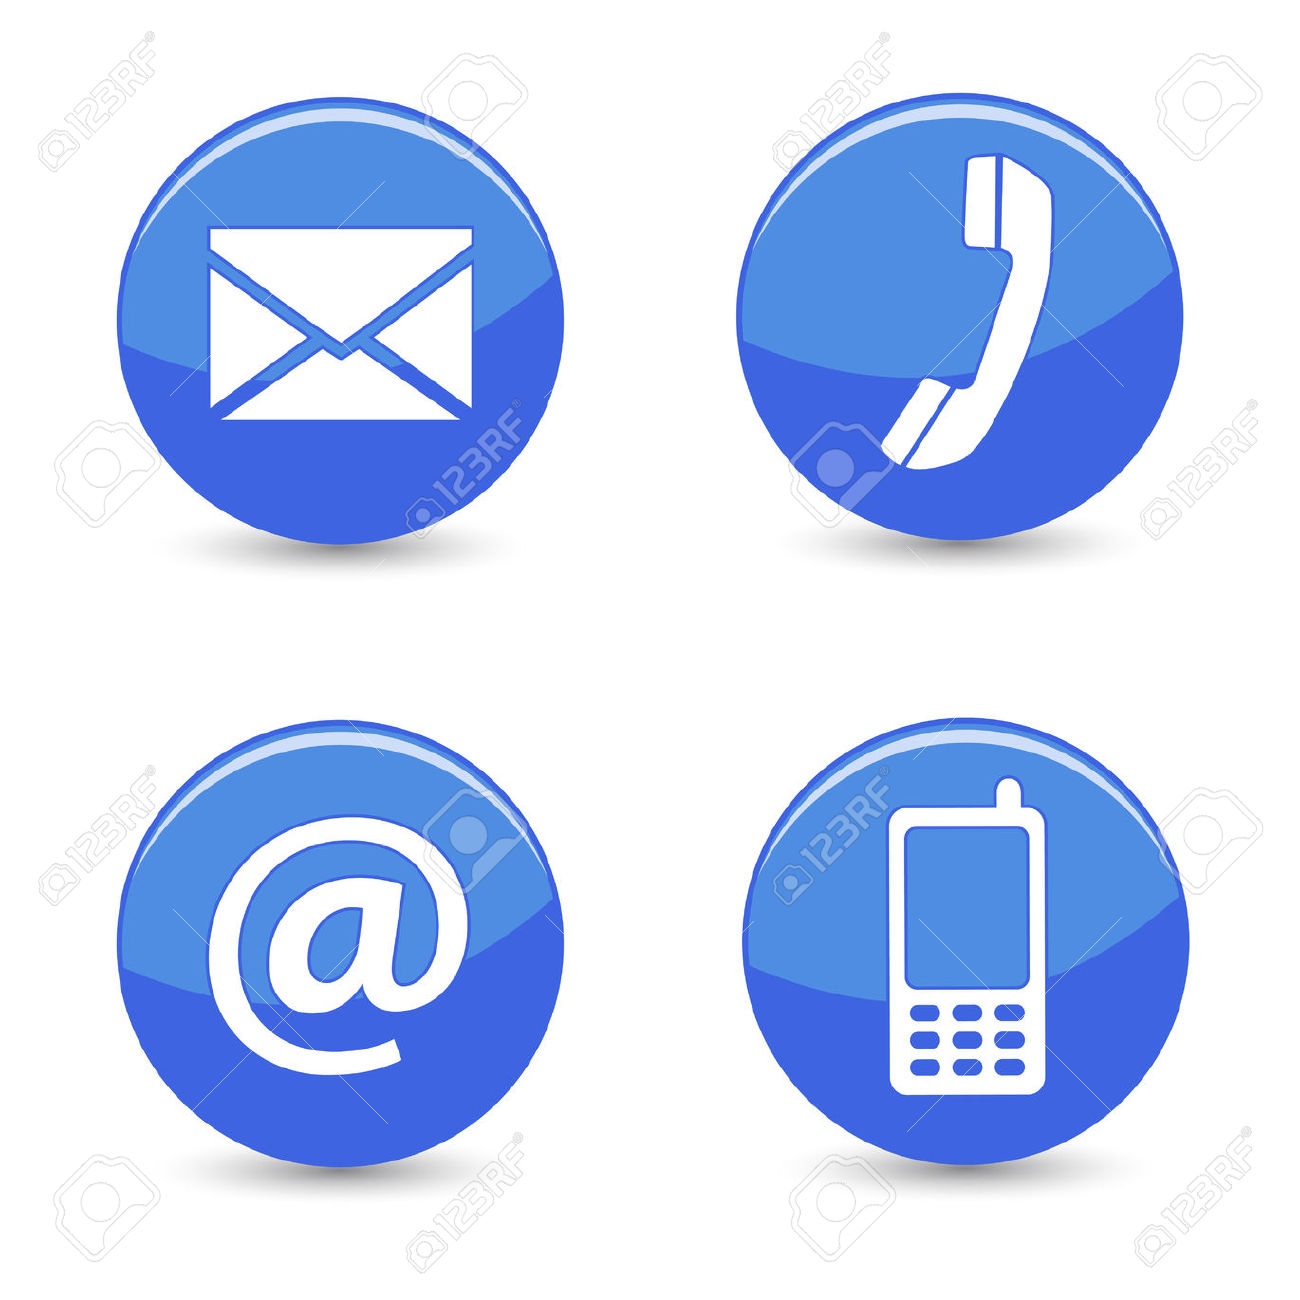 Website And Internet Contact Us Page Concept With Blue Glossy.